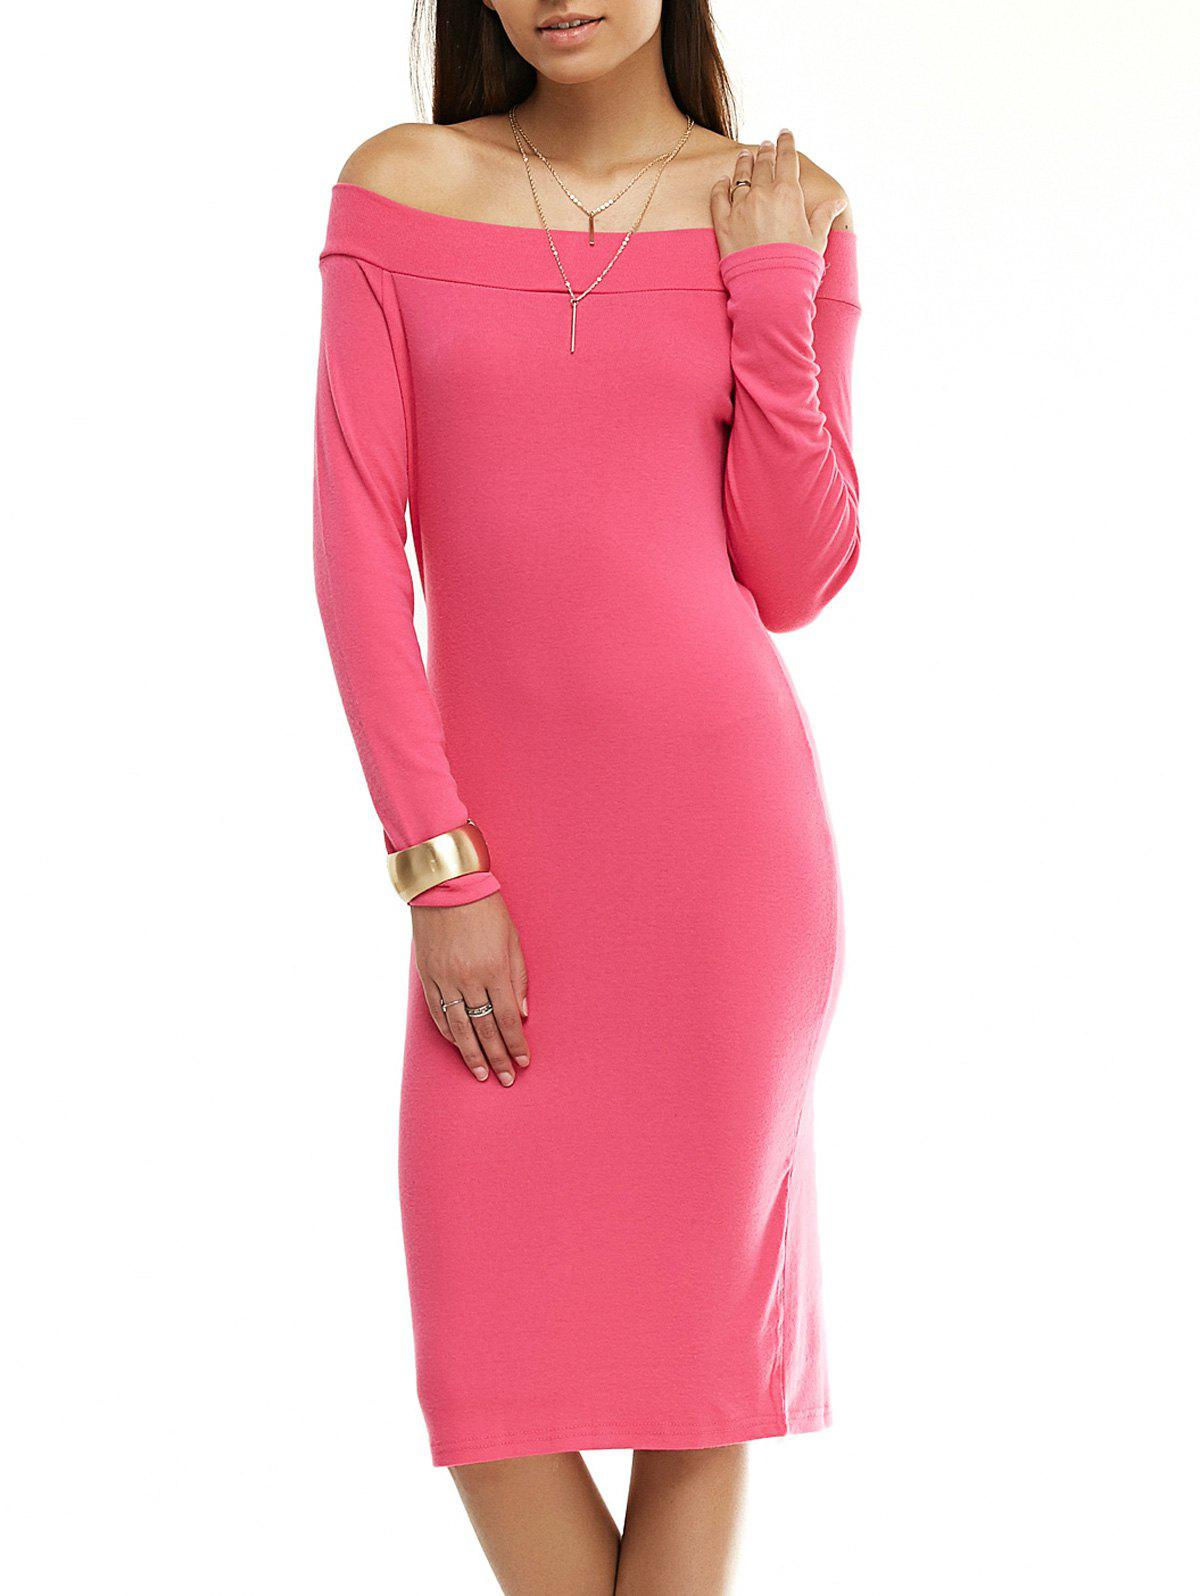 Attractive Off-The-Shoulder Long Sleeve Solid Color Dress For Women - ROSE RED XL